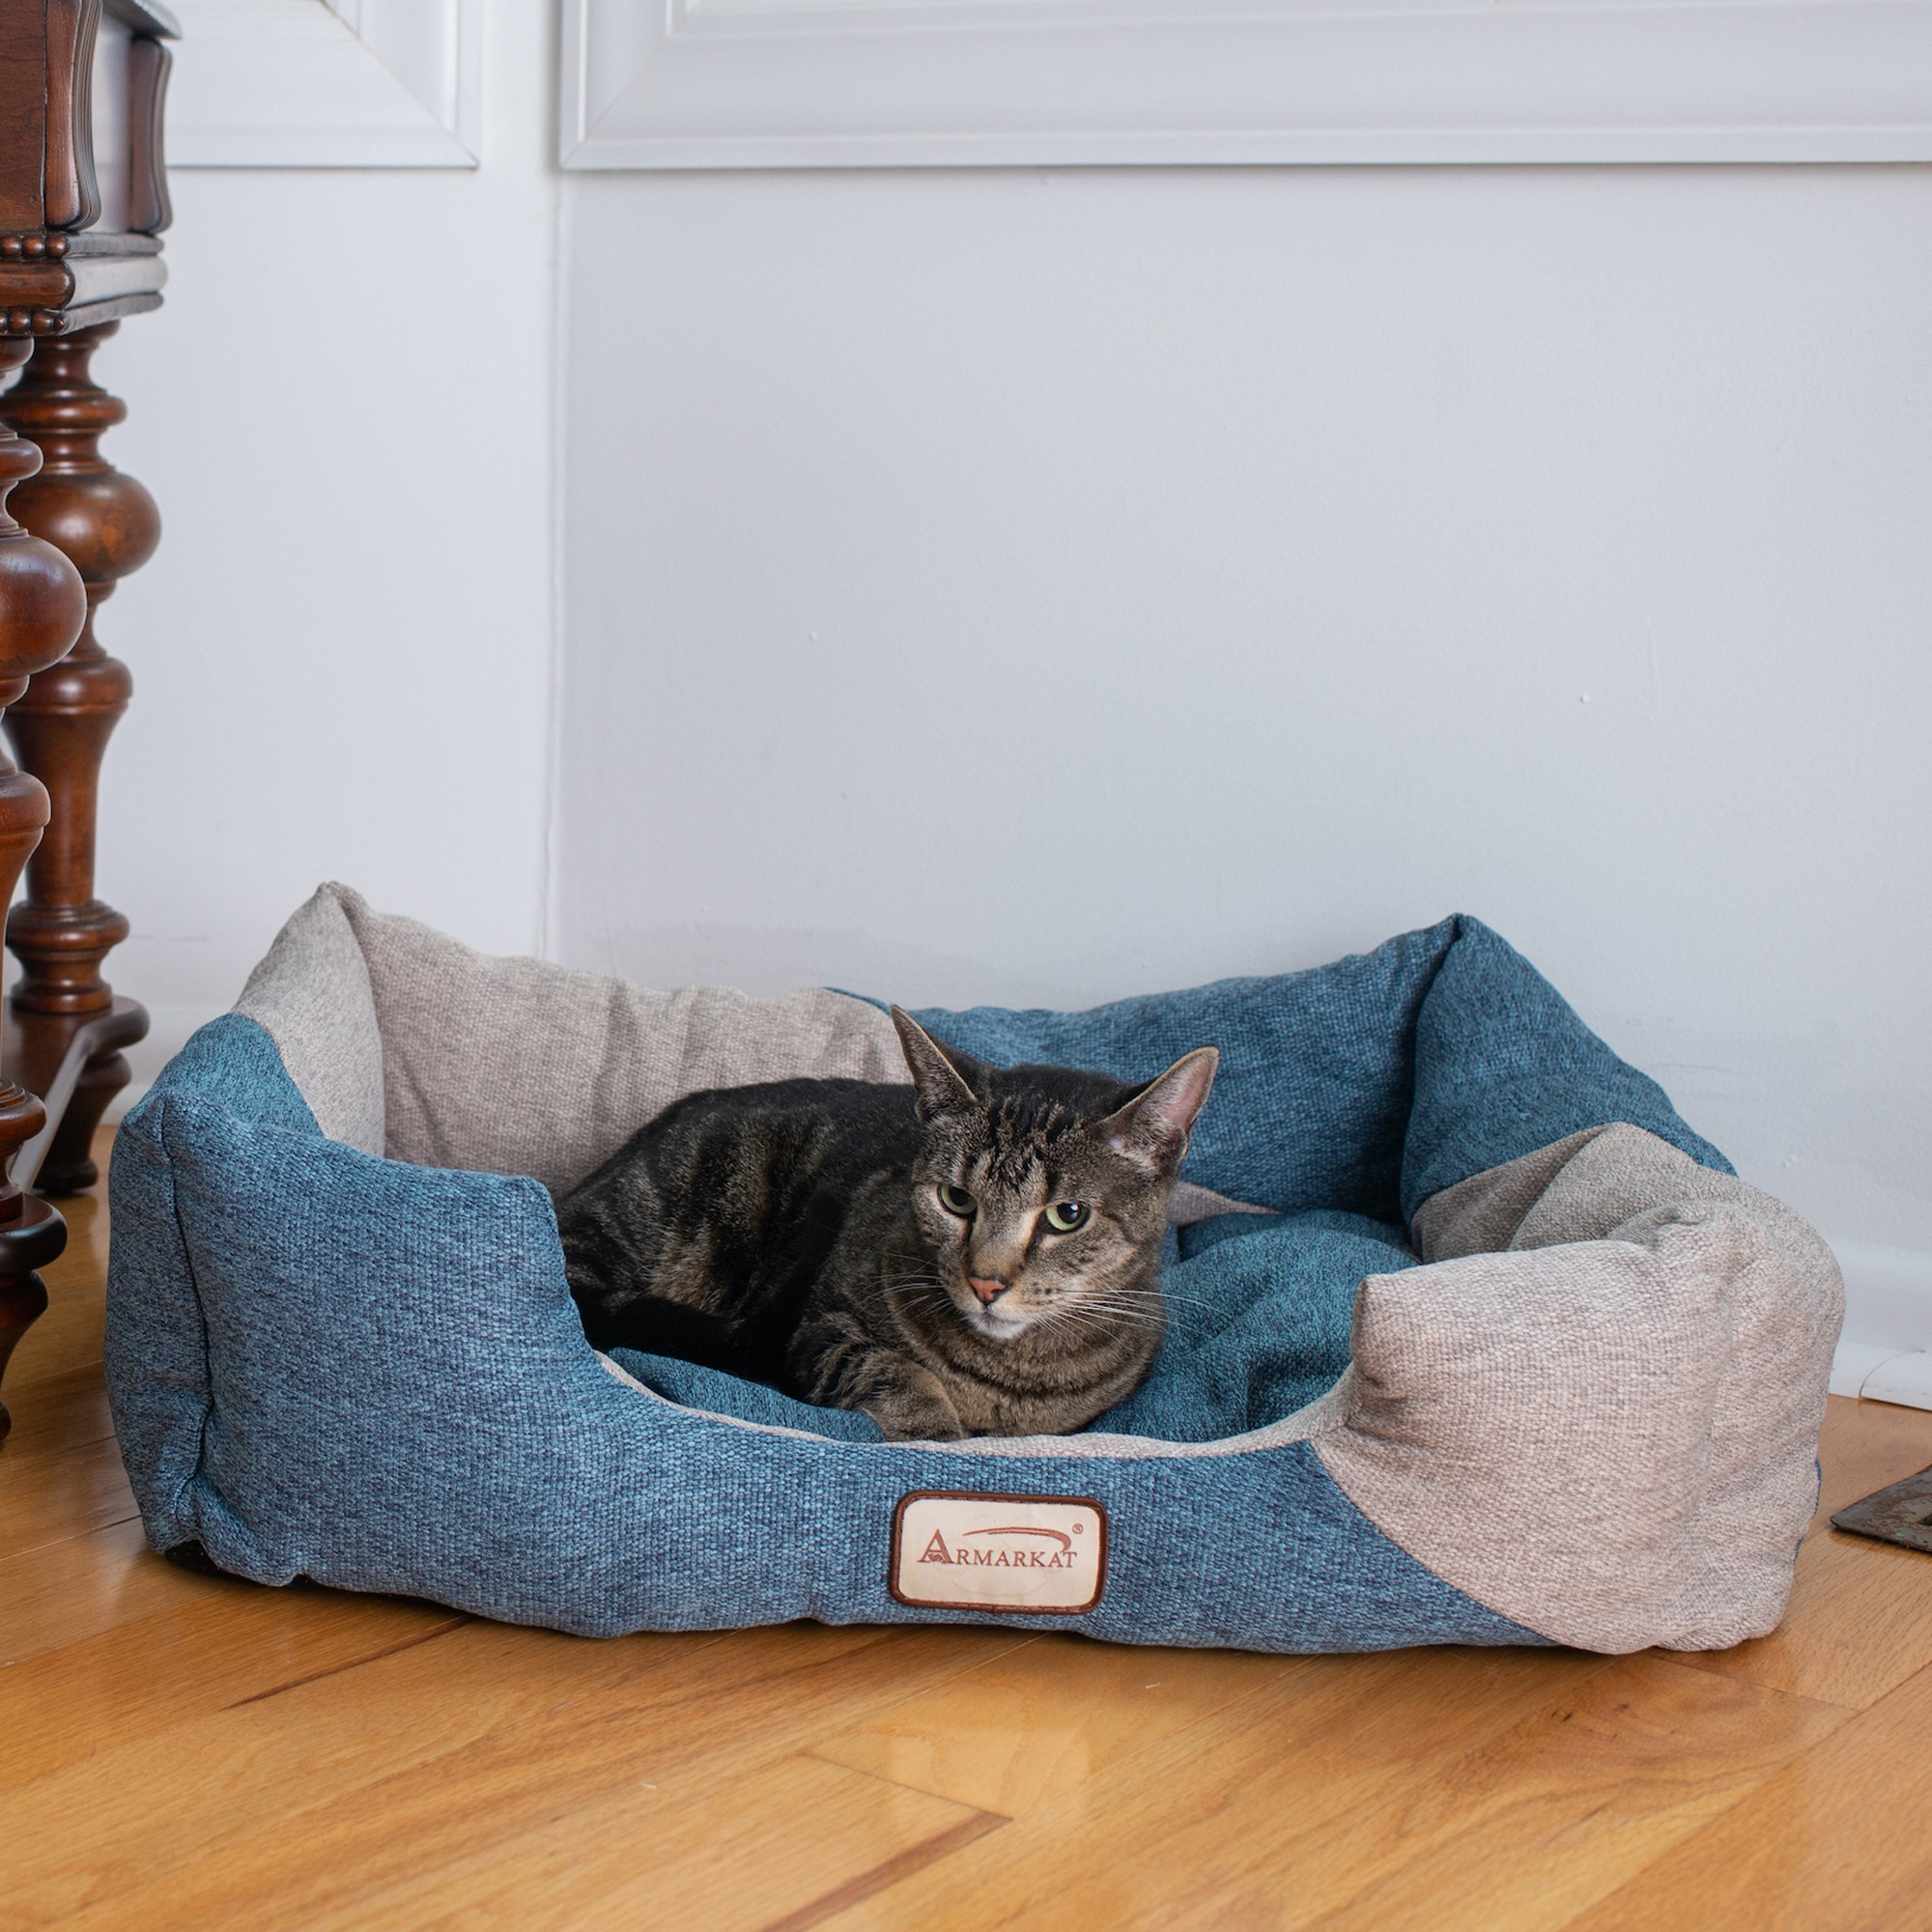 Image of AeroMark International C47 Armarkat Cat Bed Navy Blue & Beige